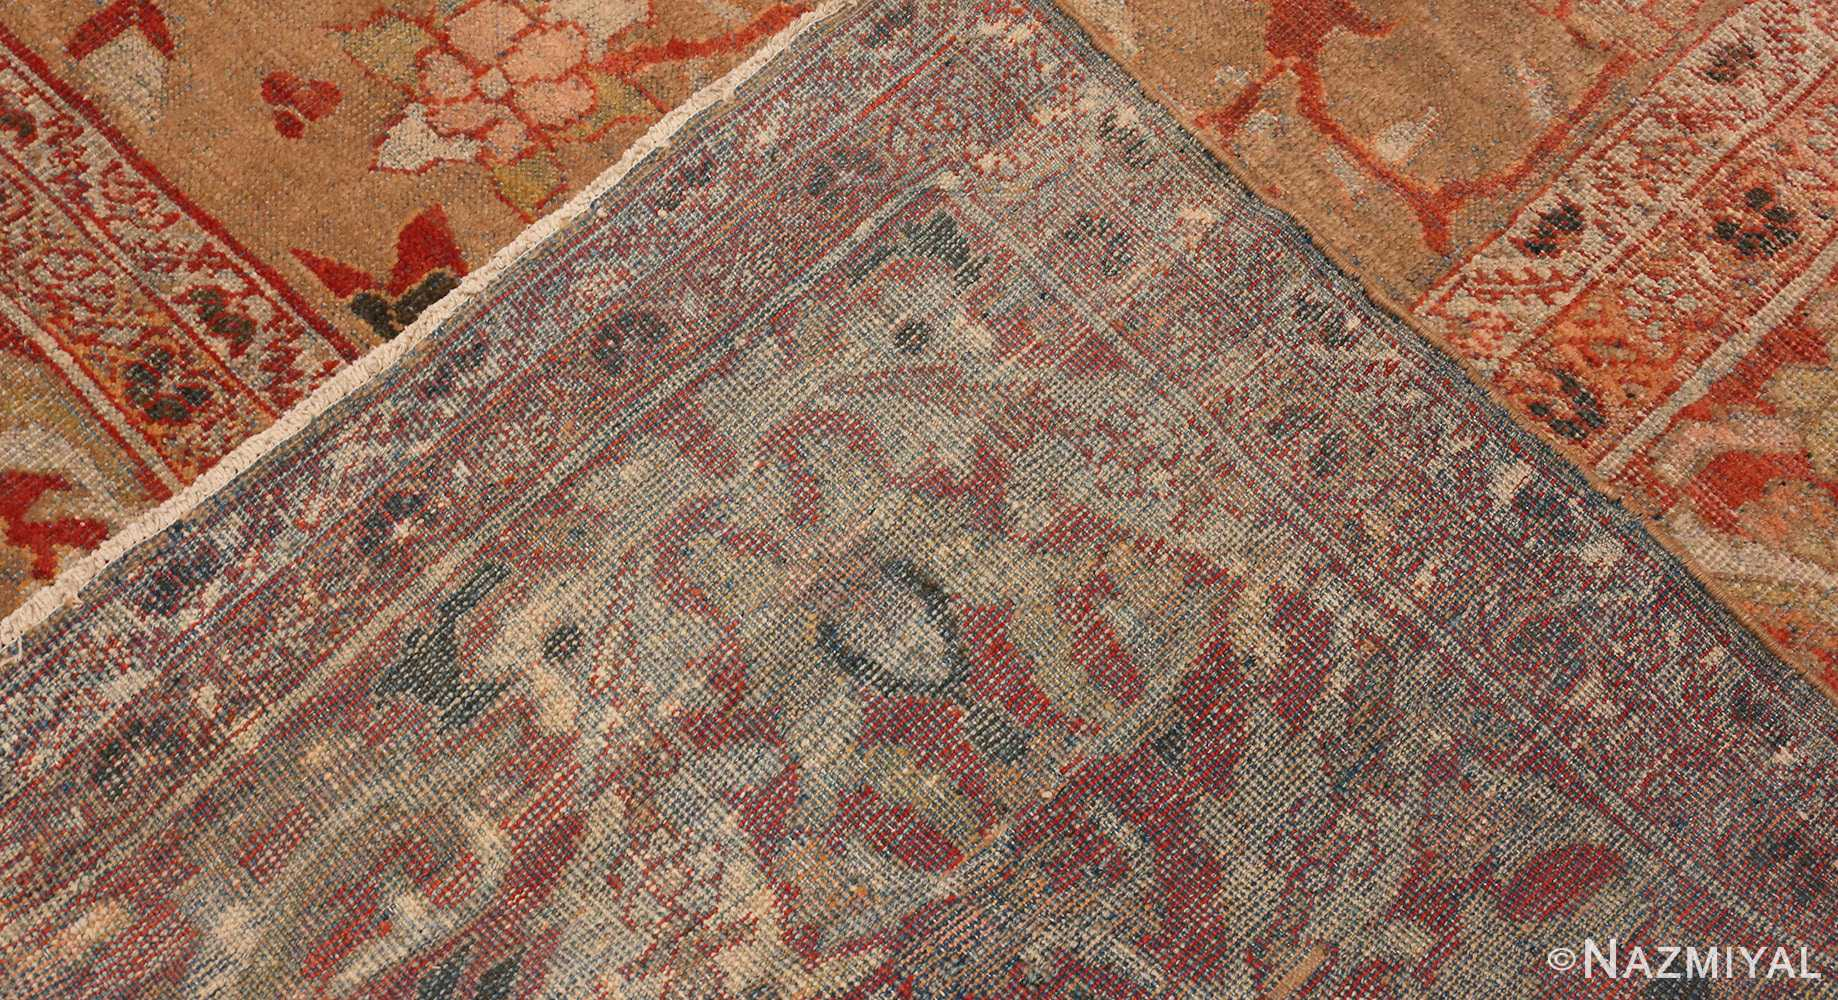 Picture of The Weave Of Antique Persian Sultanabad Rug #48944 from Nazmiyal Antique Rugs in NYC